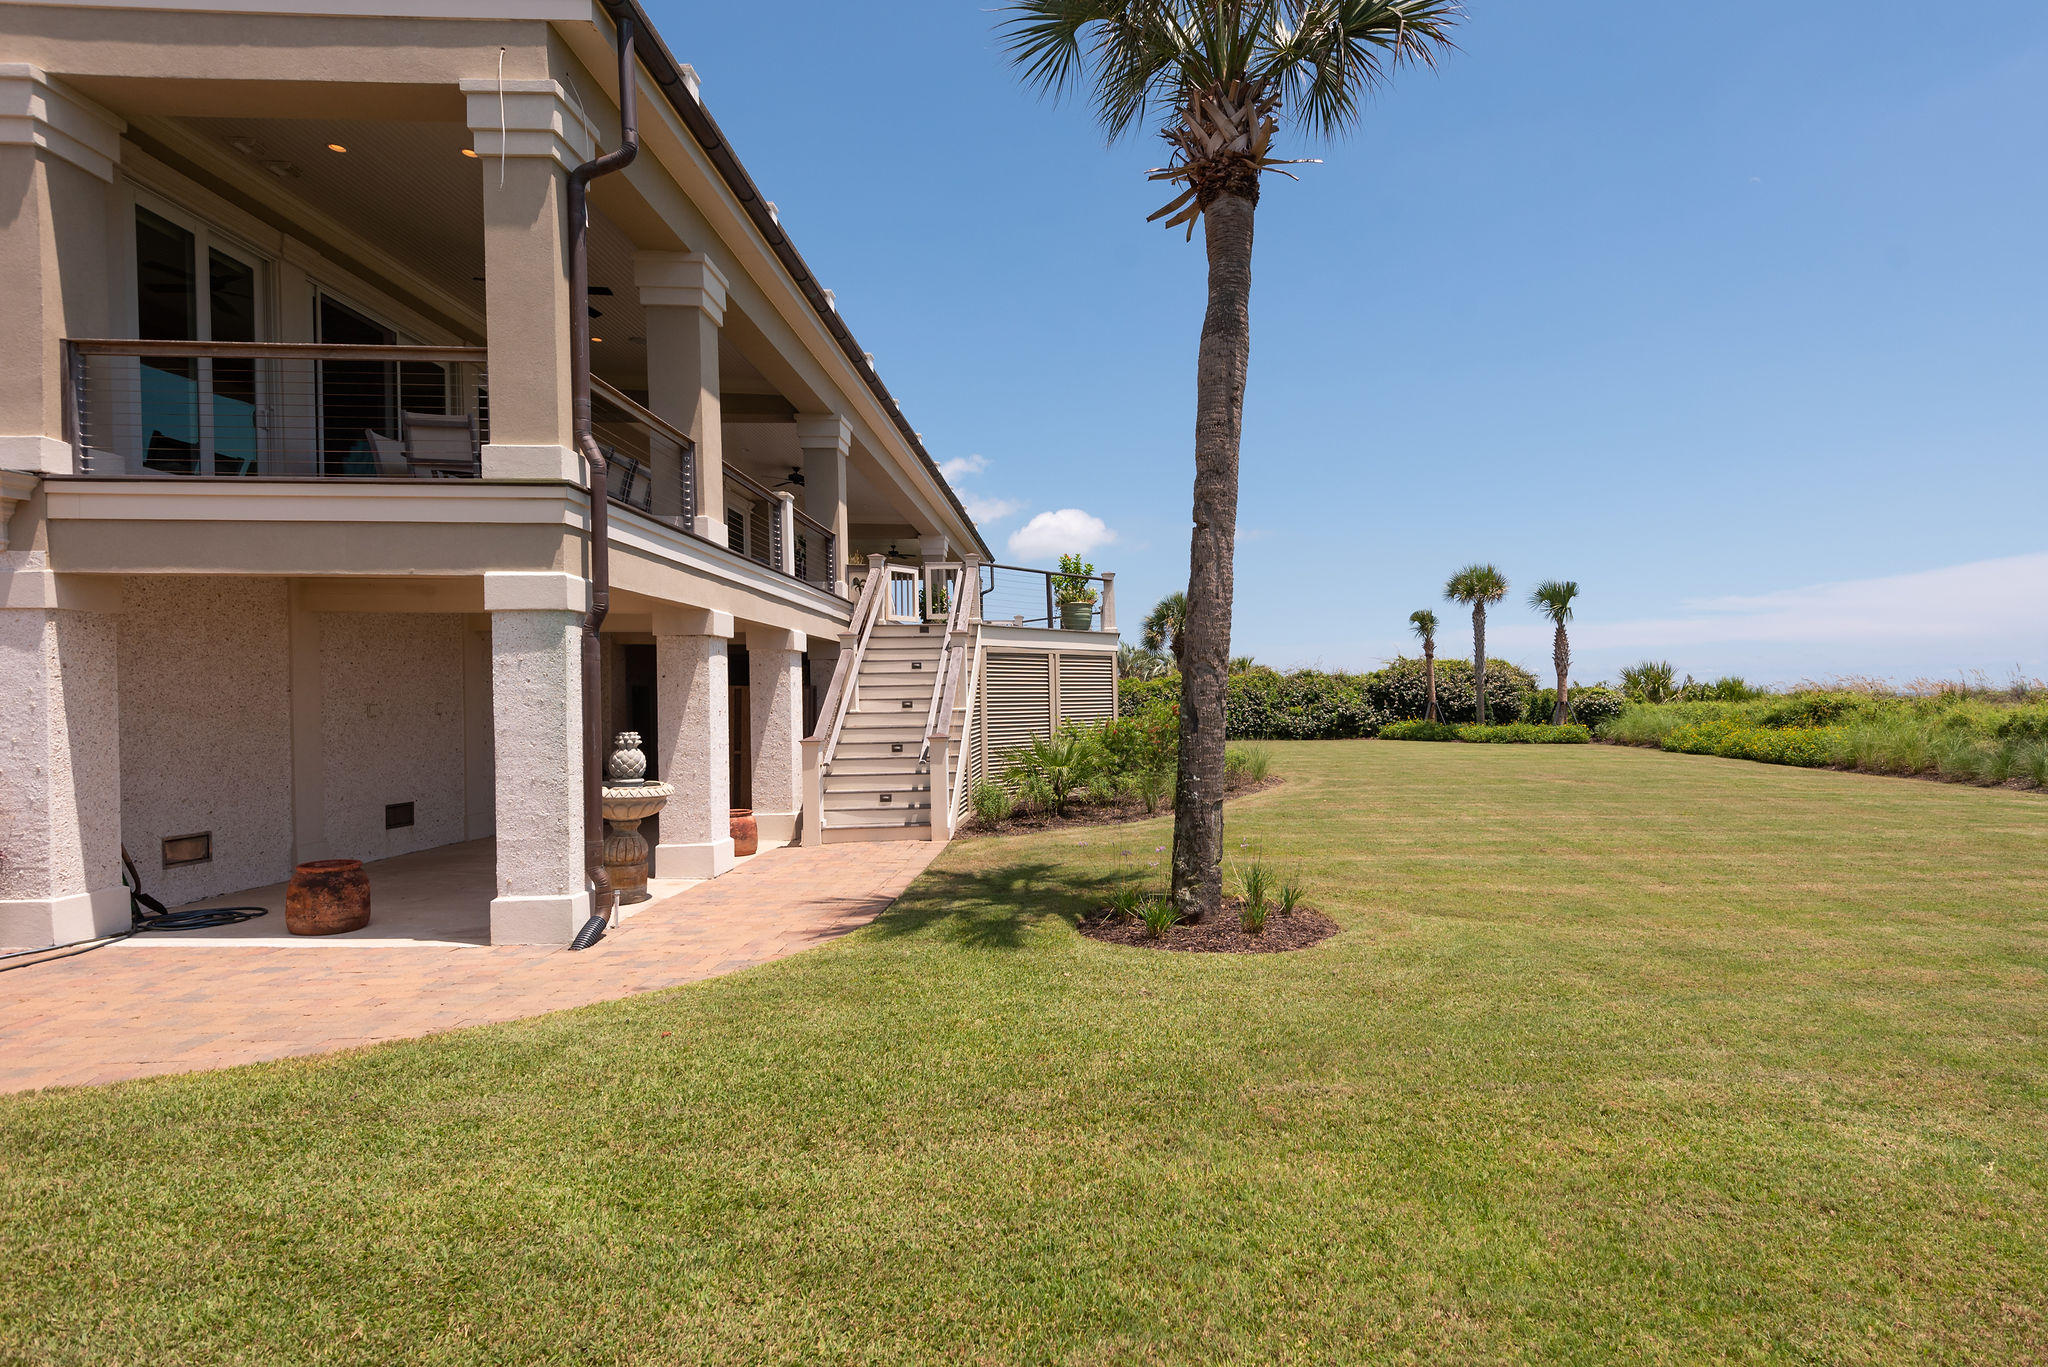 Isle of Palms Homes For Sale - 2 50th, Isle of Palms, SC - 26